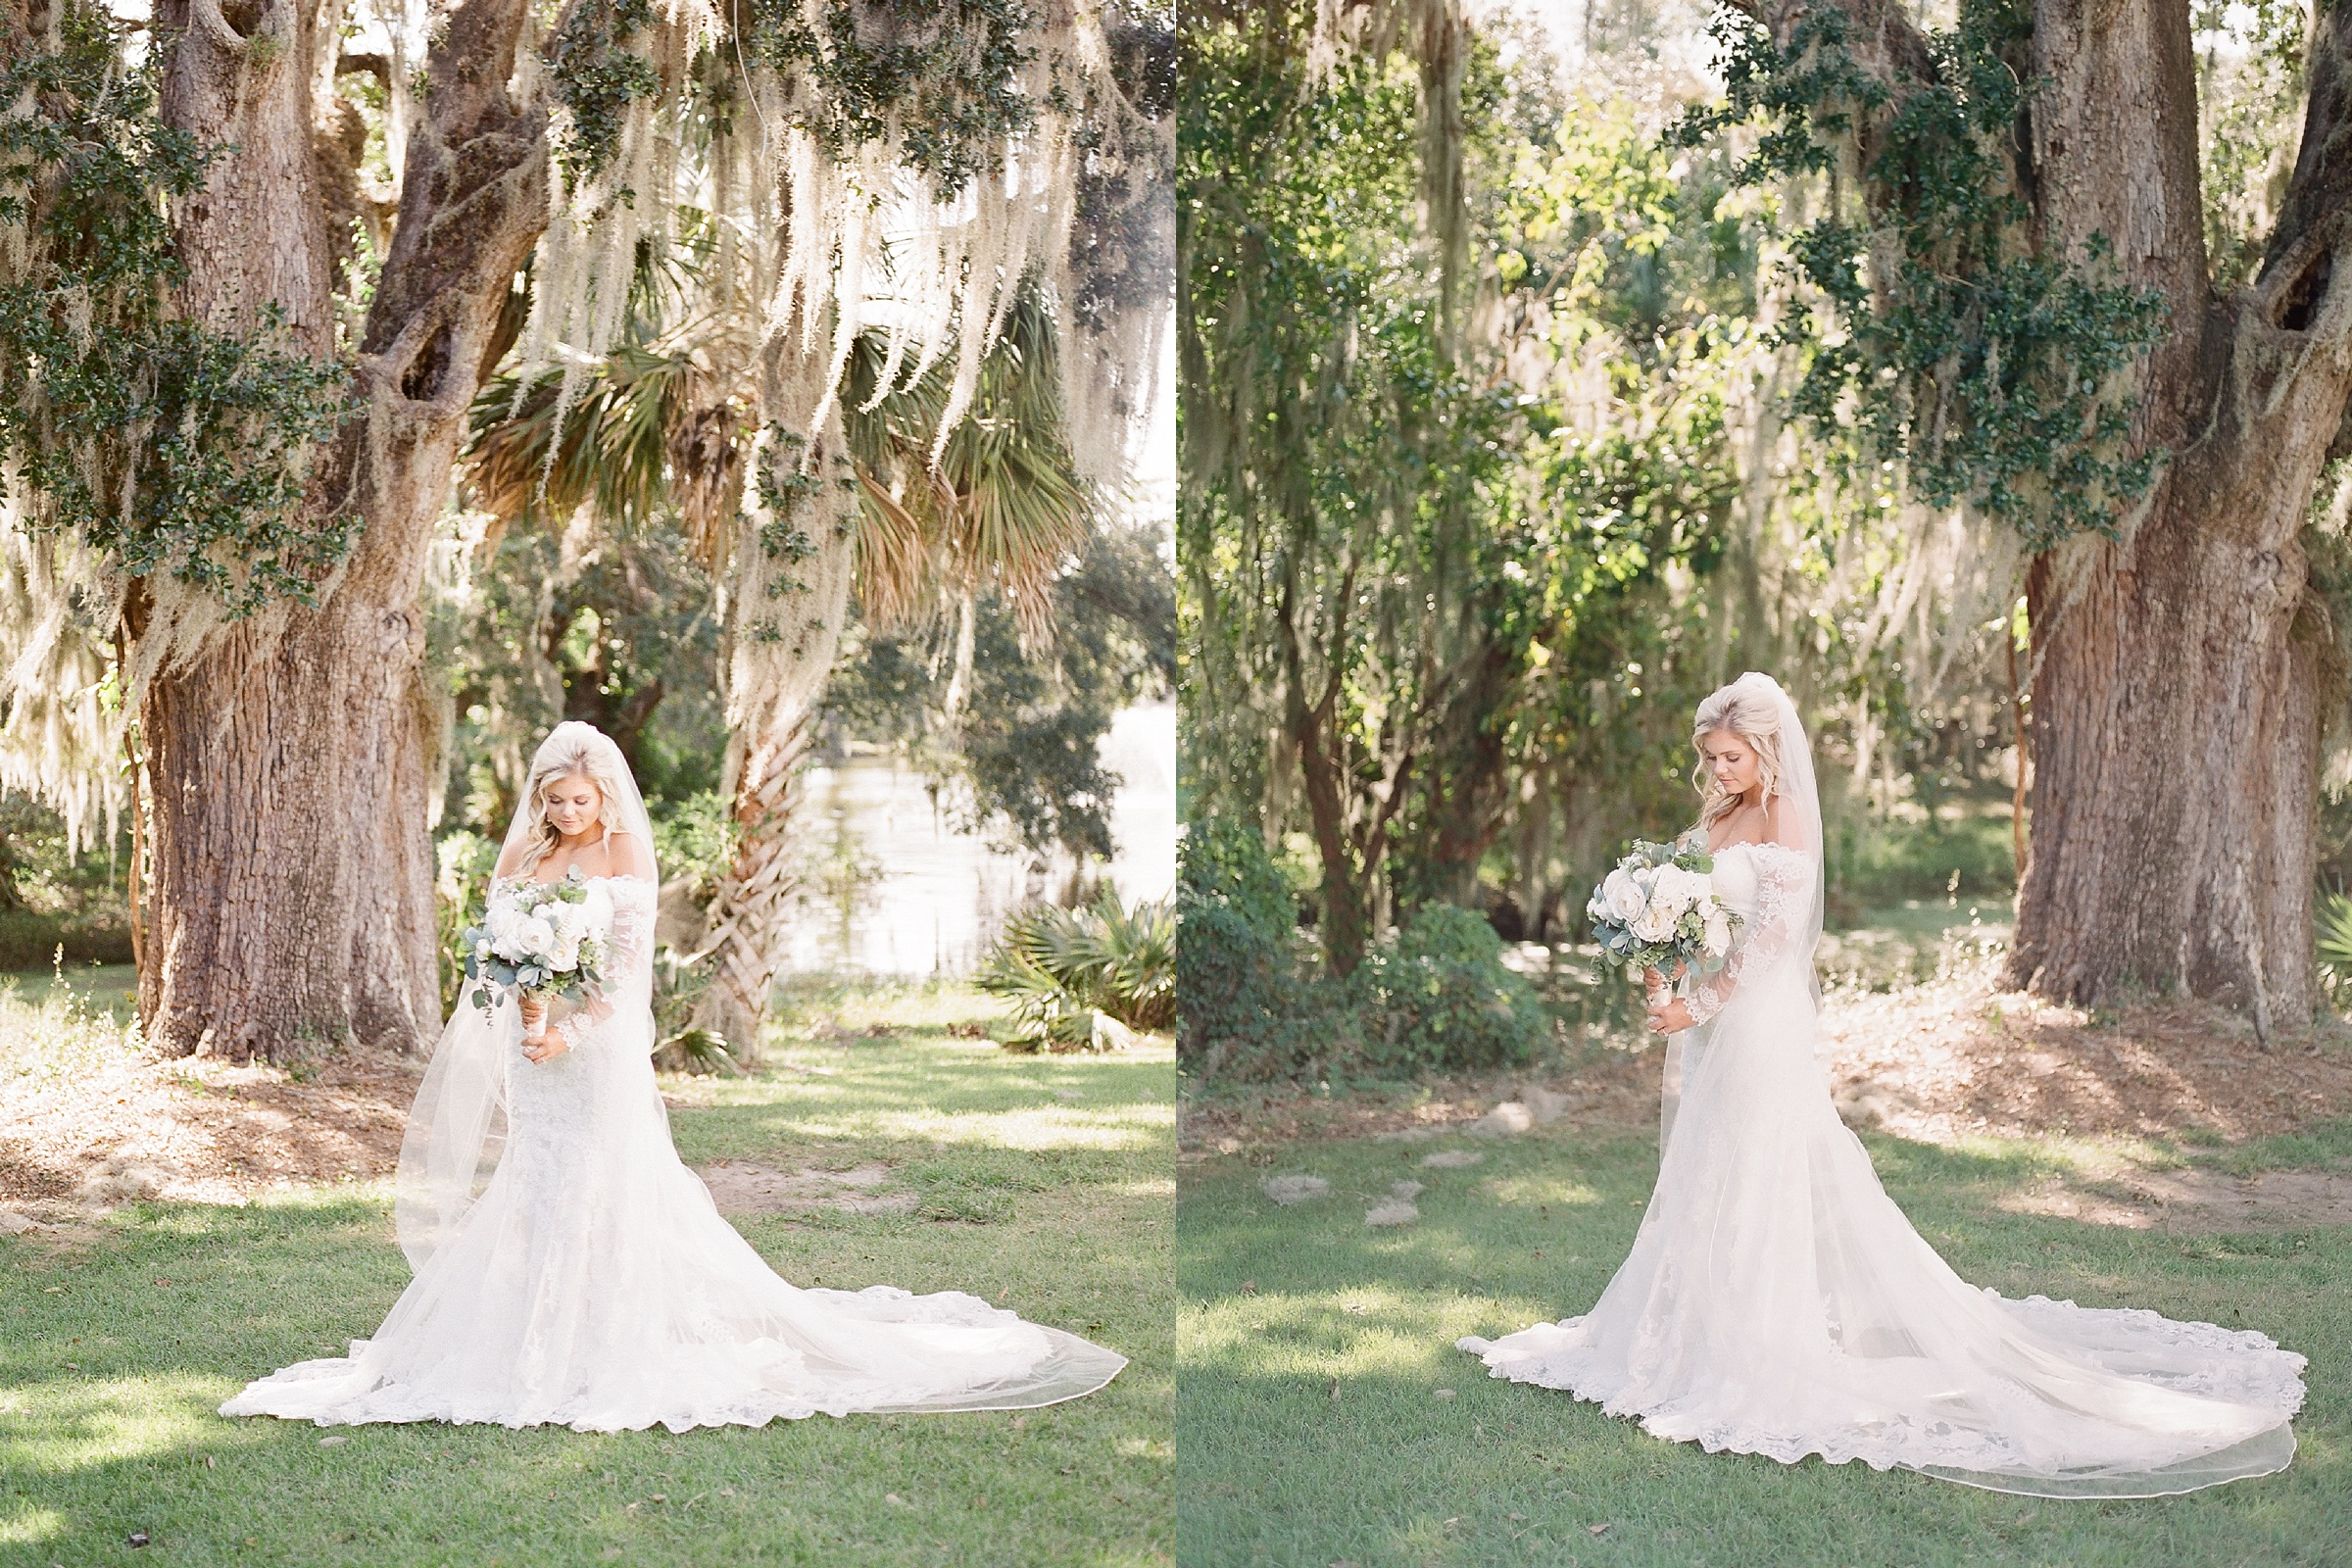 charleston sc bridal portrait session legare waring house wedding photographer spanish moss bridal portraits oak trees